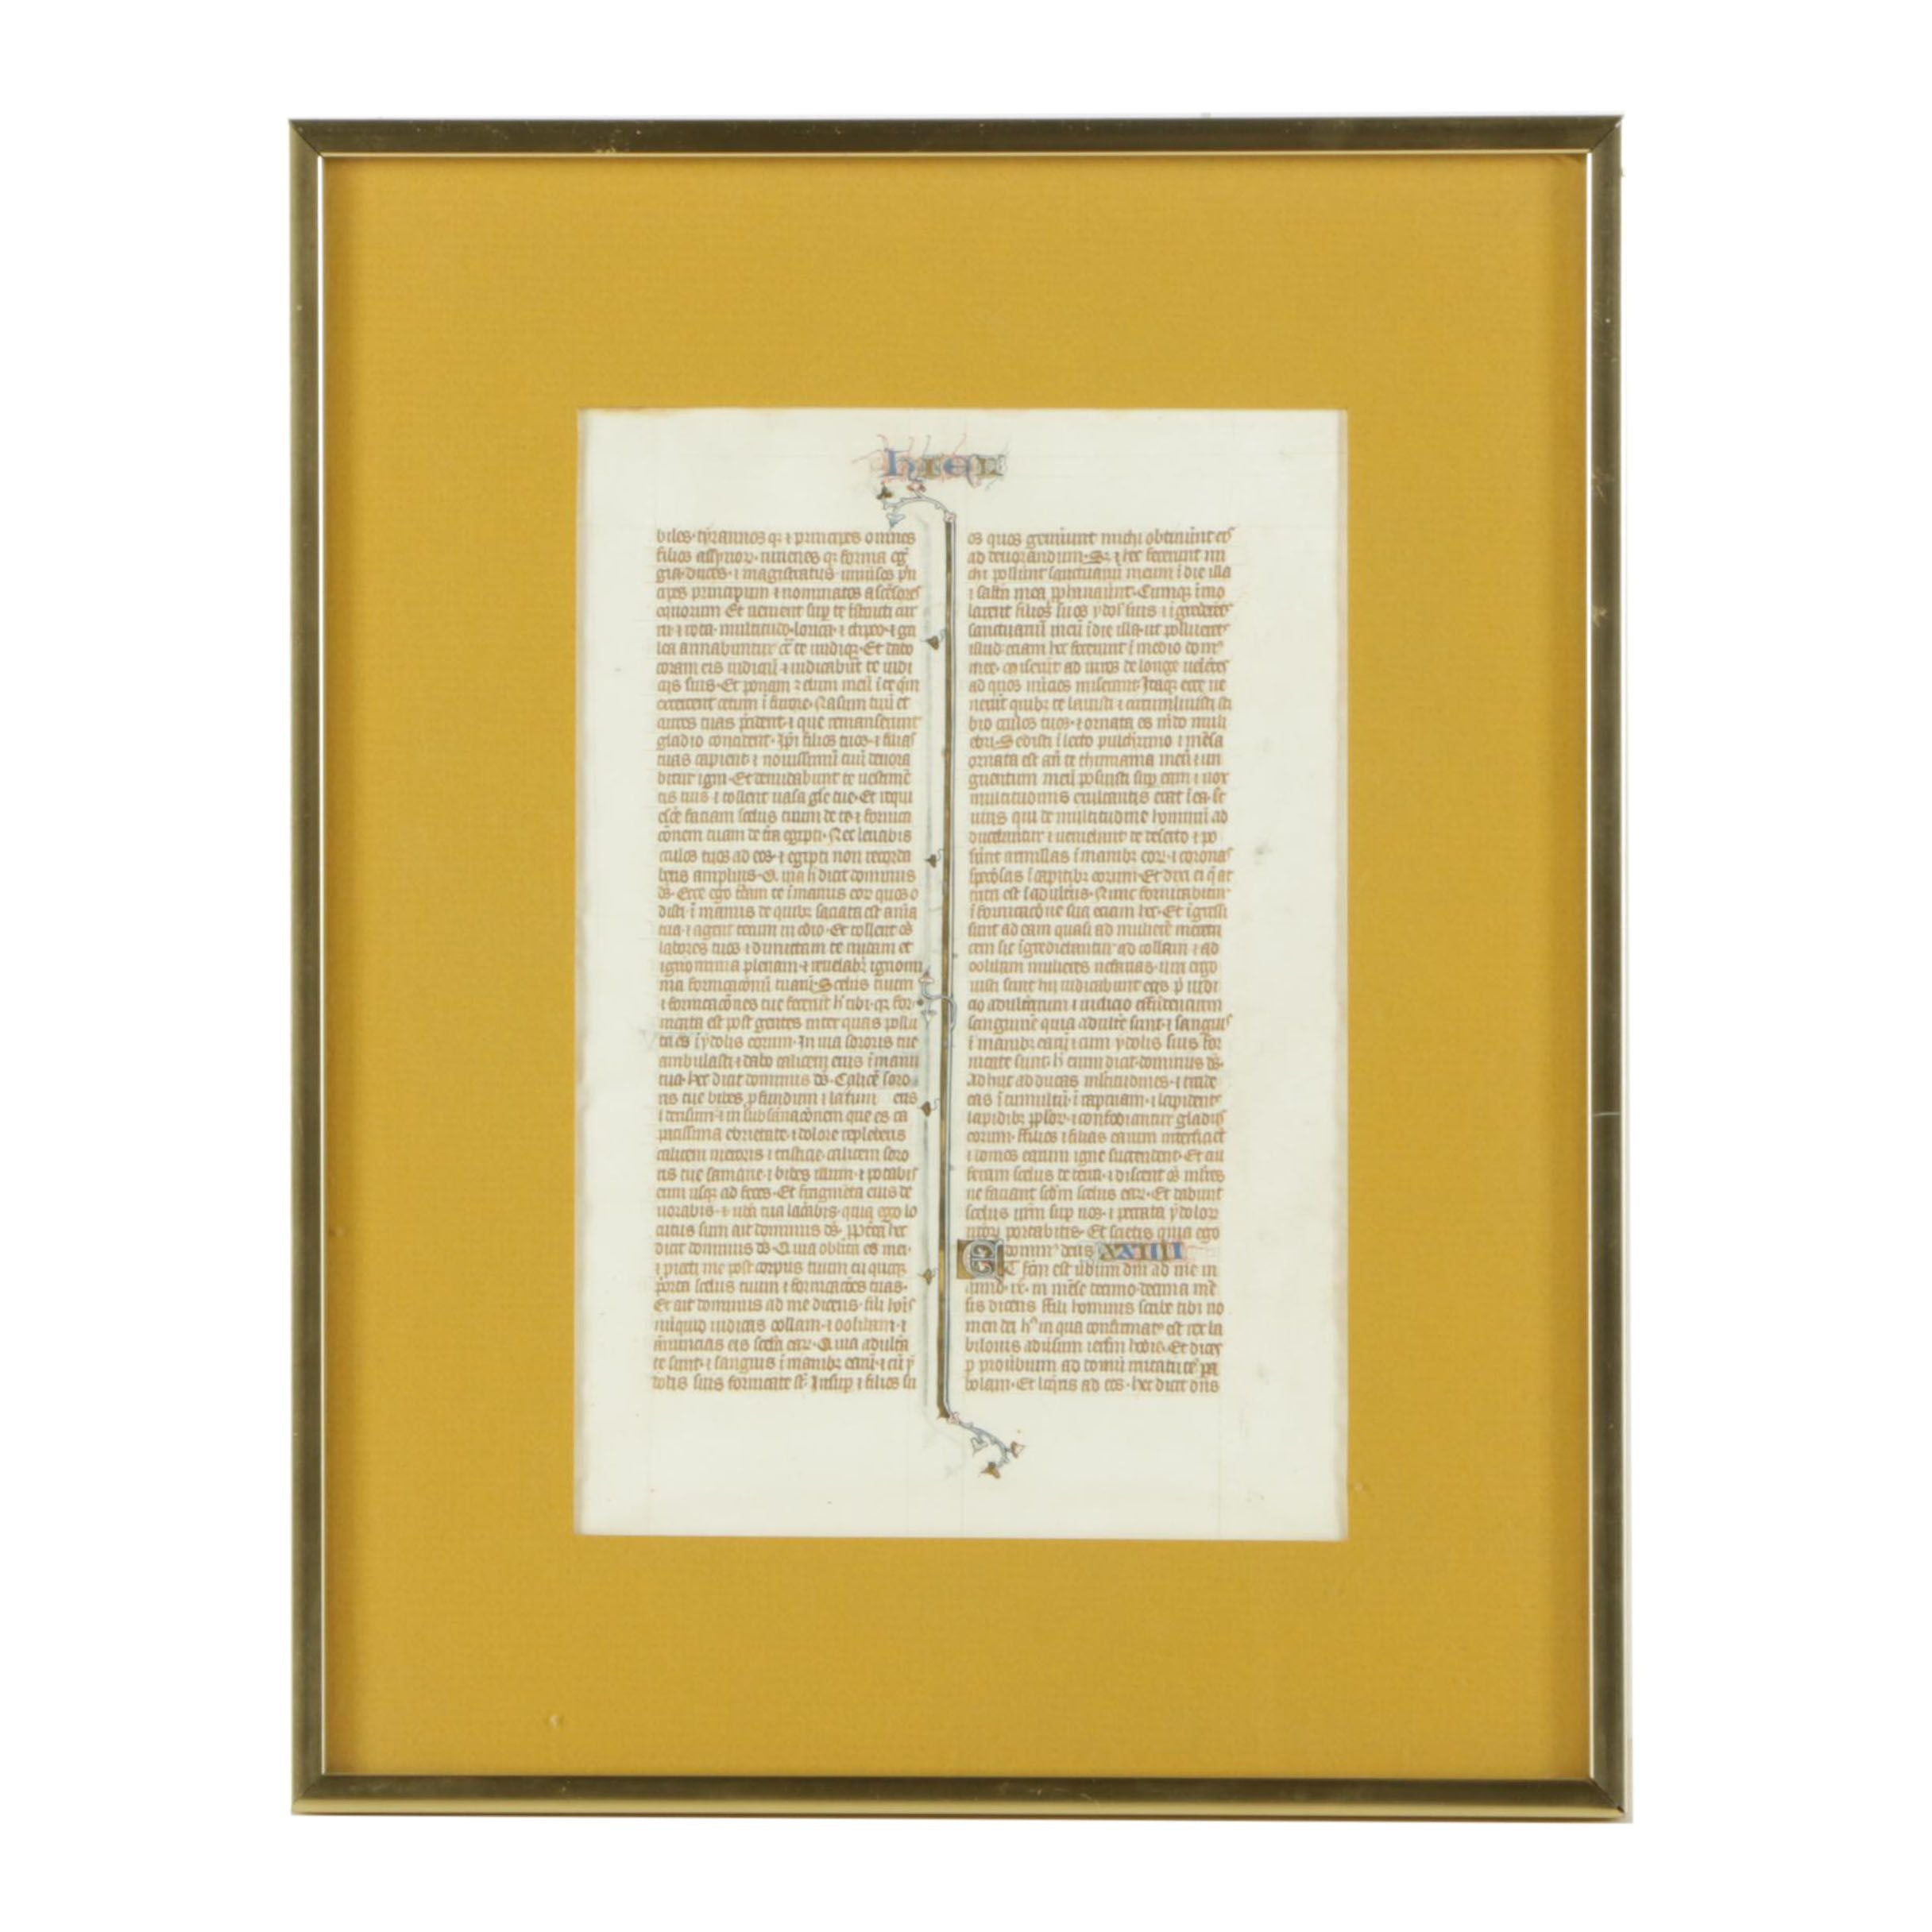 Medieval Hand-Painted Double-Sided Latin Manuscript on Vellum